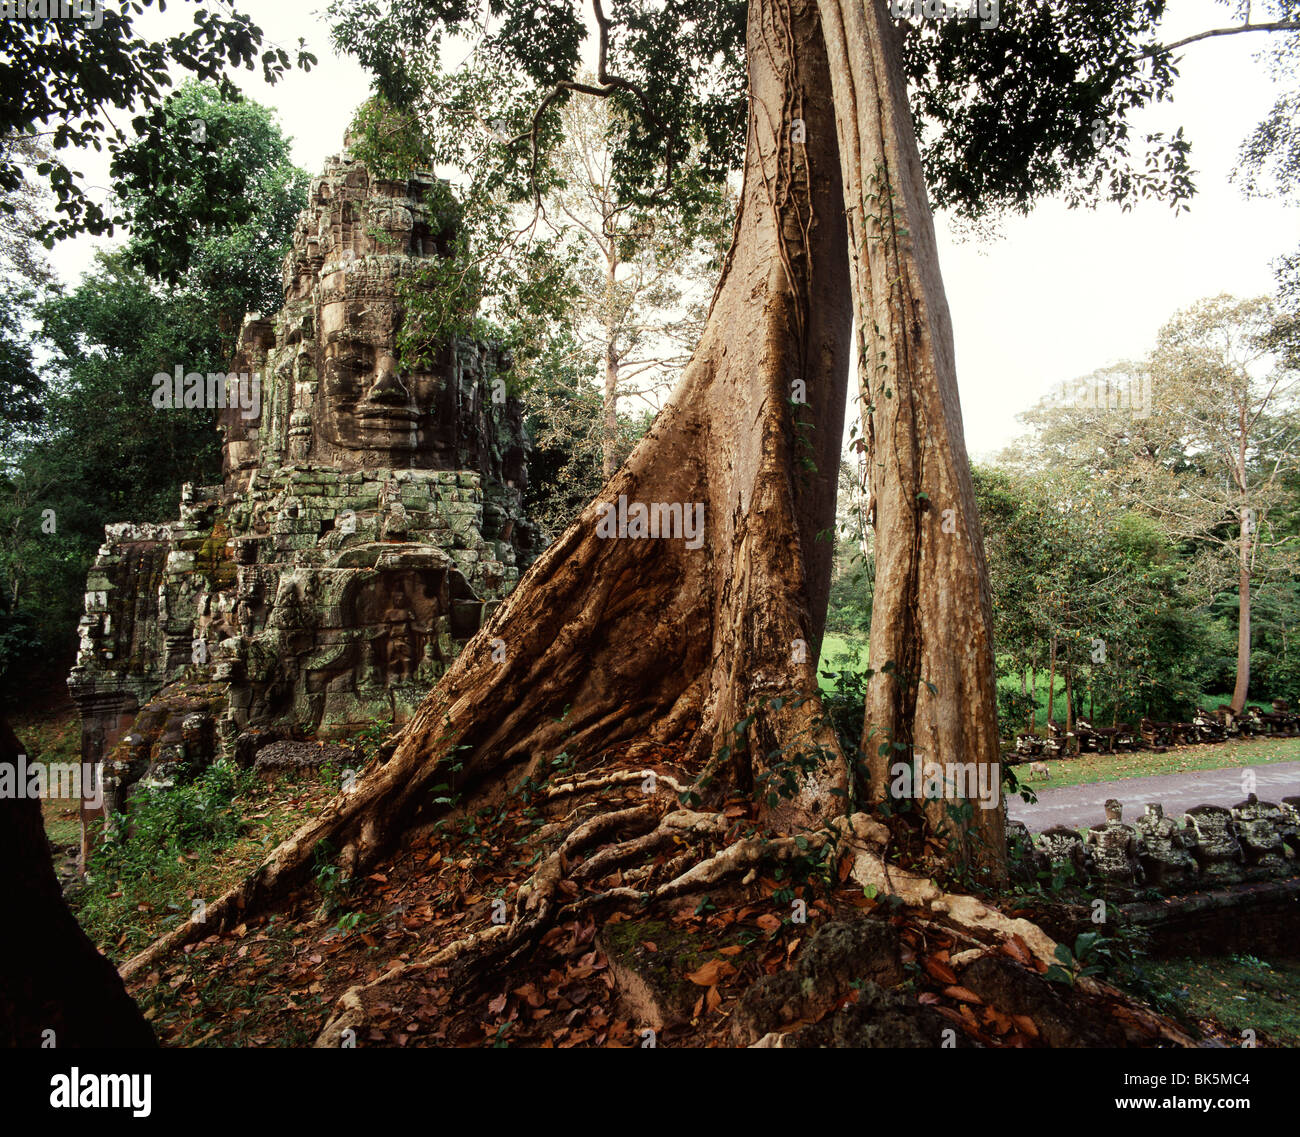 Gates of Angkor Thom, Victory Gate, Angkor Thom, Angkor, UNESCO World Heritage Site, Cambodia, Indochina, Southeast - Stock Image